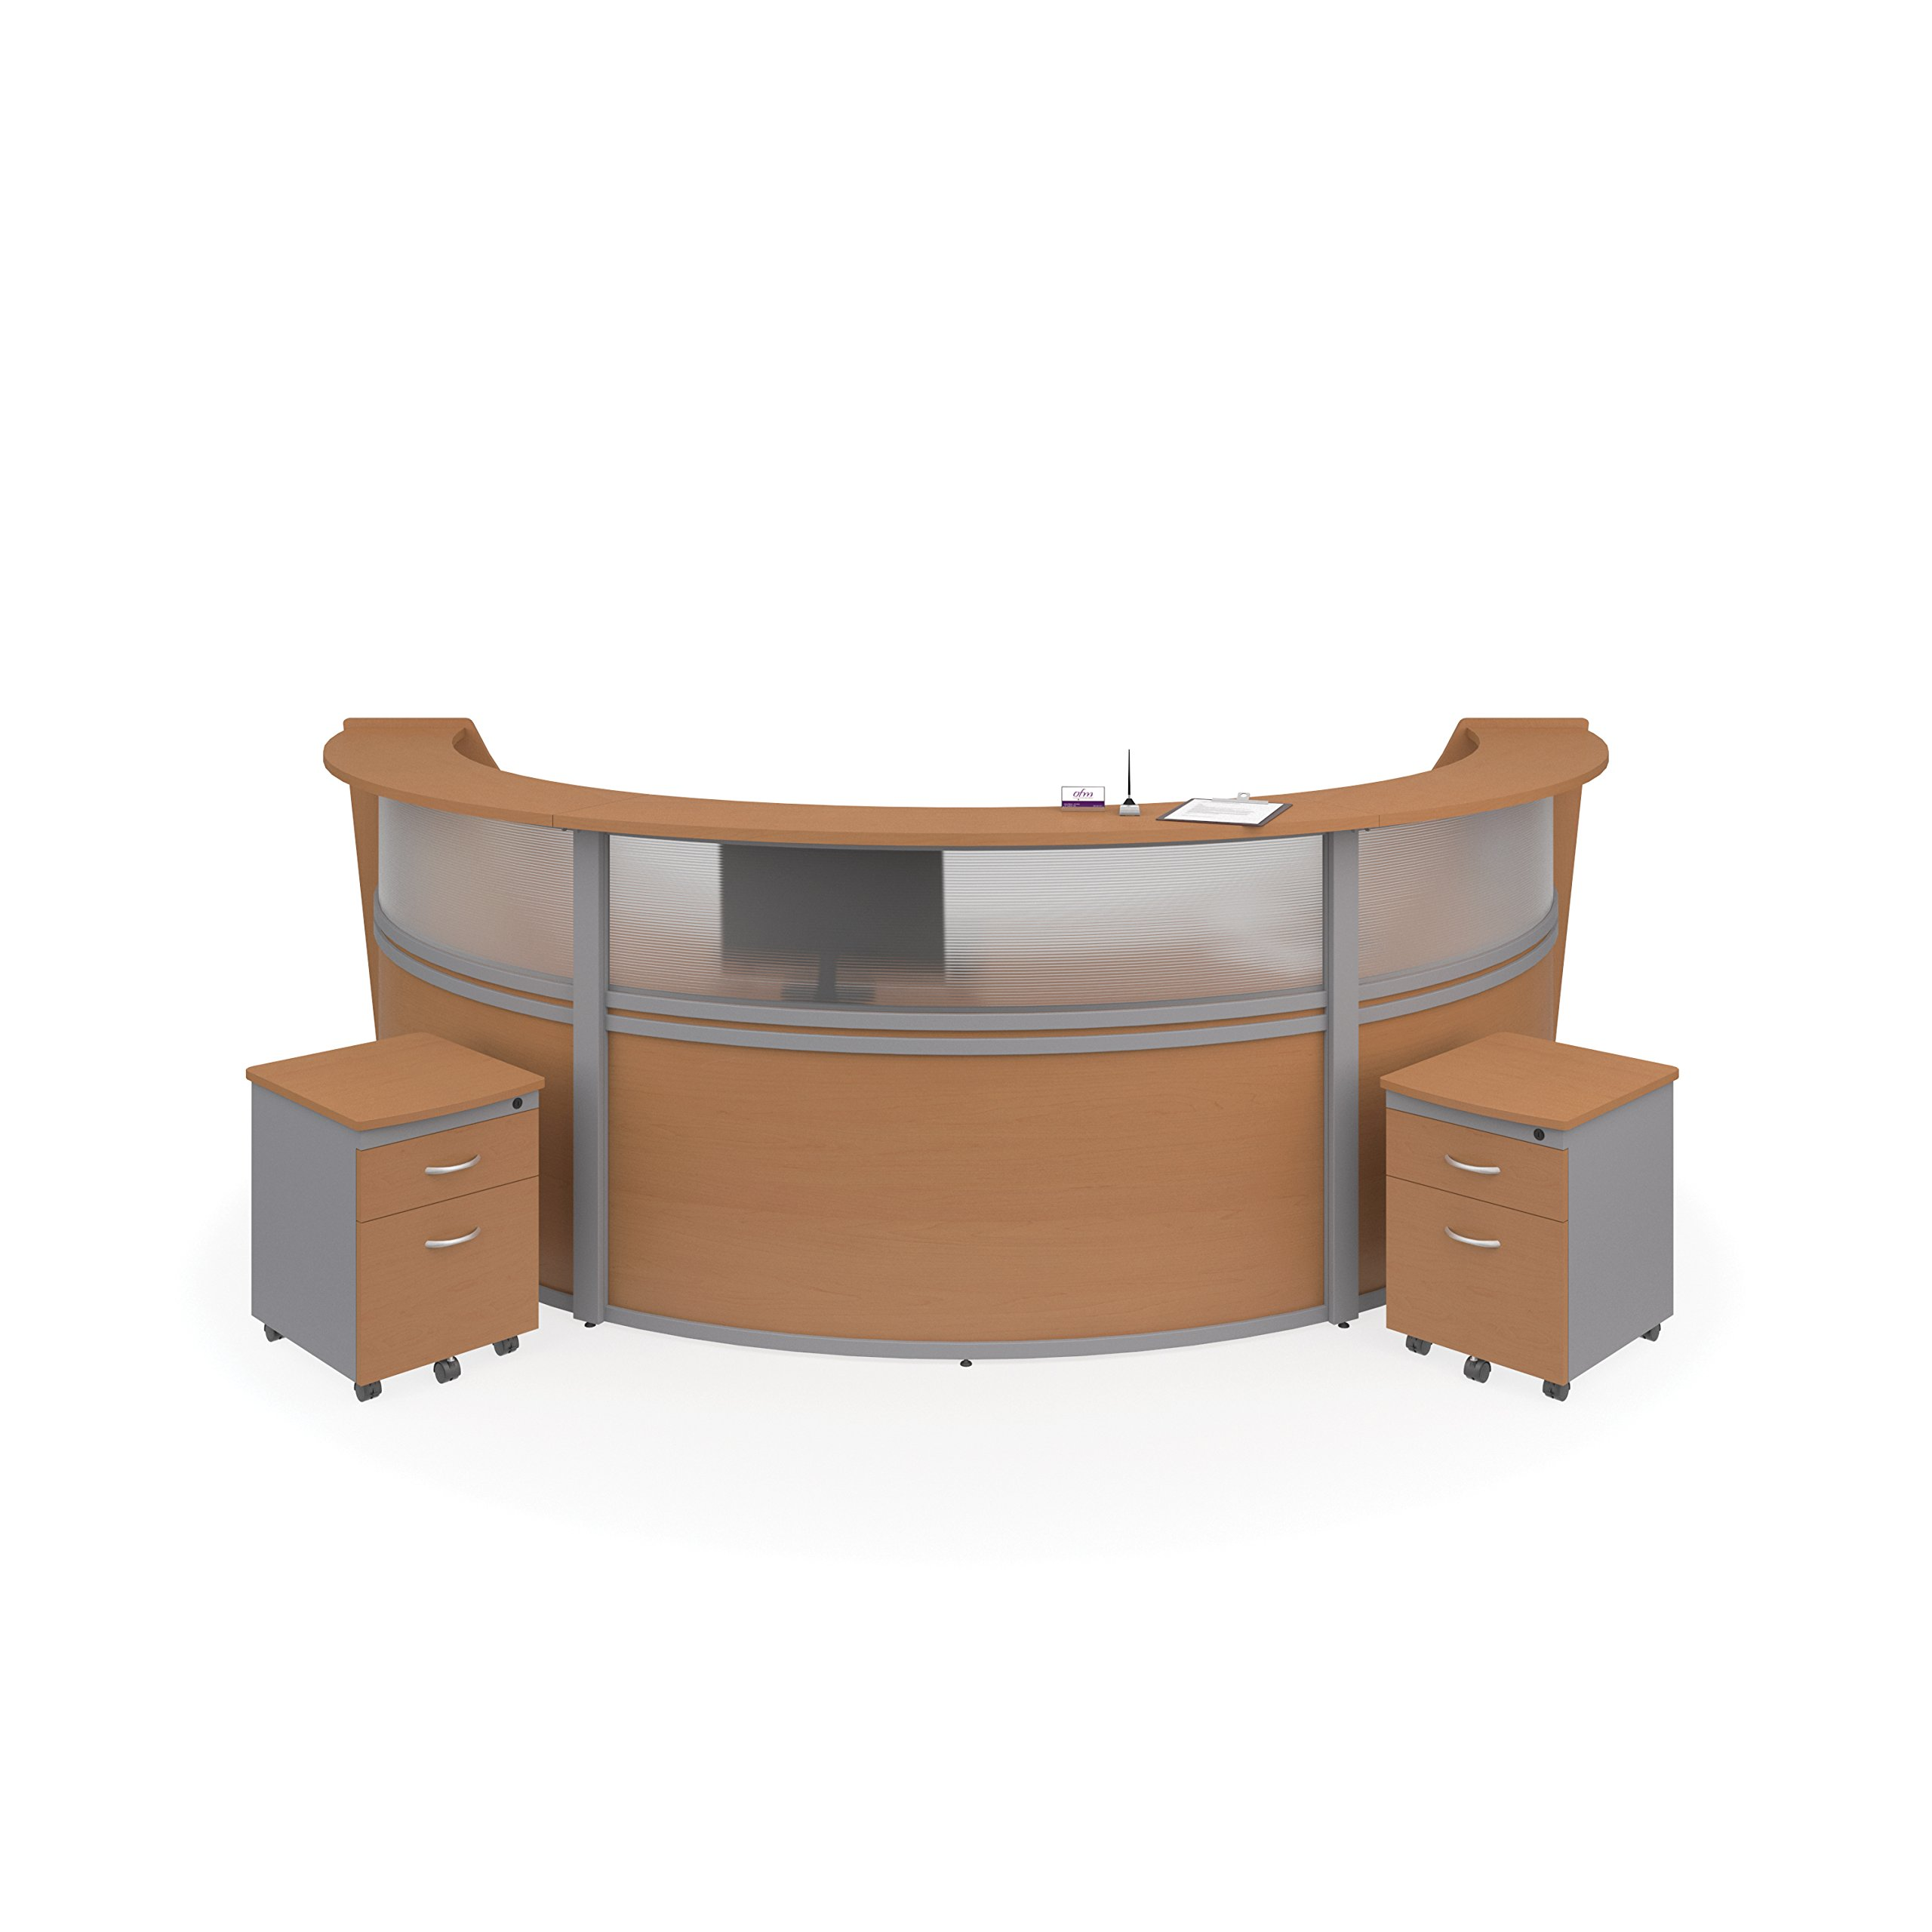 OFM Marque Plexi 4-Unit Reception Station - Office Furniture Receptionist/Secretary Desk with Two Maple Pedestals (PKG-55314-MPL) by OFM